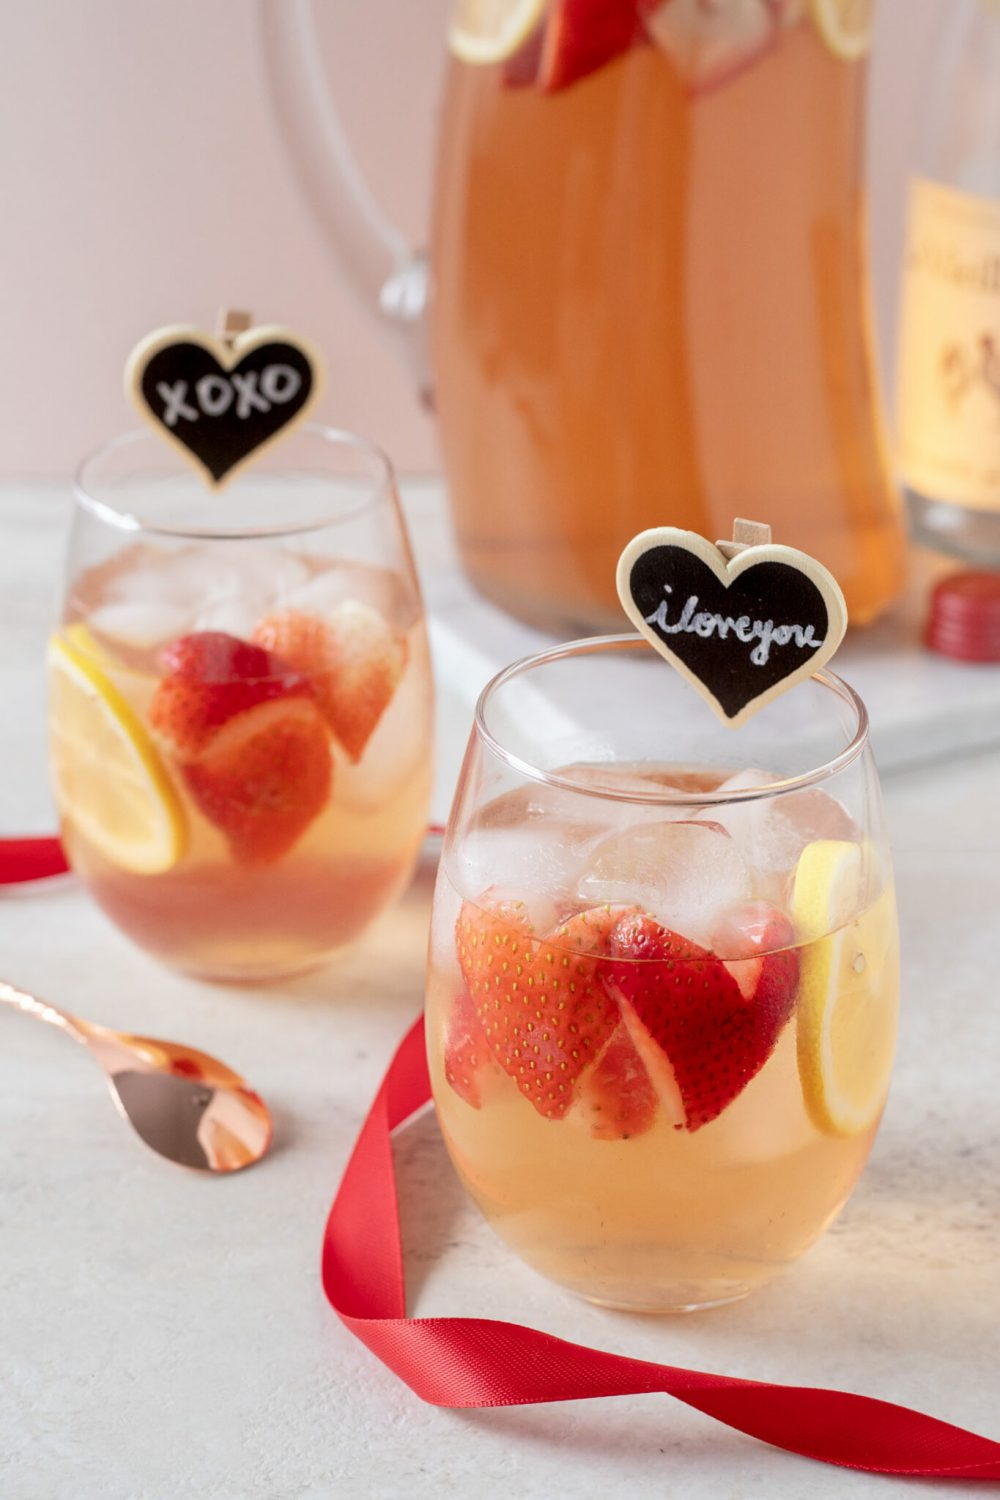 This Rosé Sangria recipe uses dry blush wine and white peach juice to make a rum sangria that is perfect for sipping for Valentine's Day or as an Anniversary wine sangria. #Sangria #Wine #Rosé #Cocktail #CocktailRecipe #ElleTalk